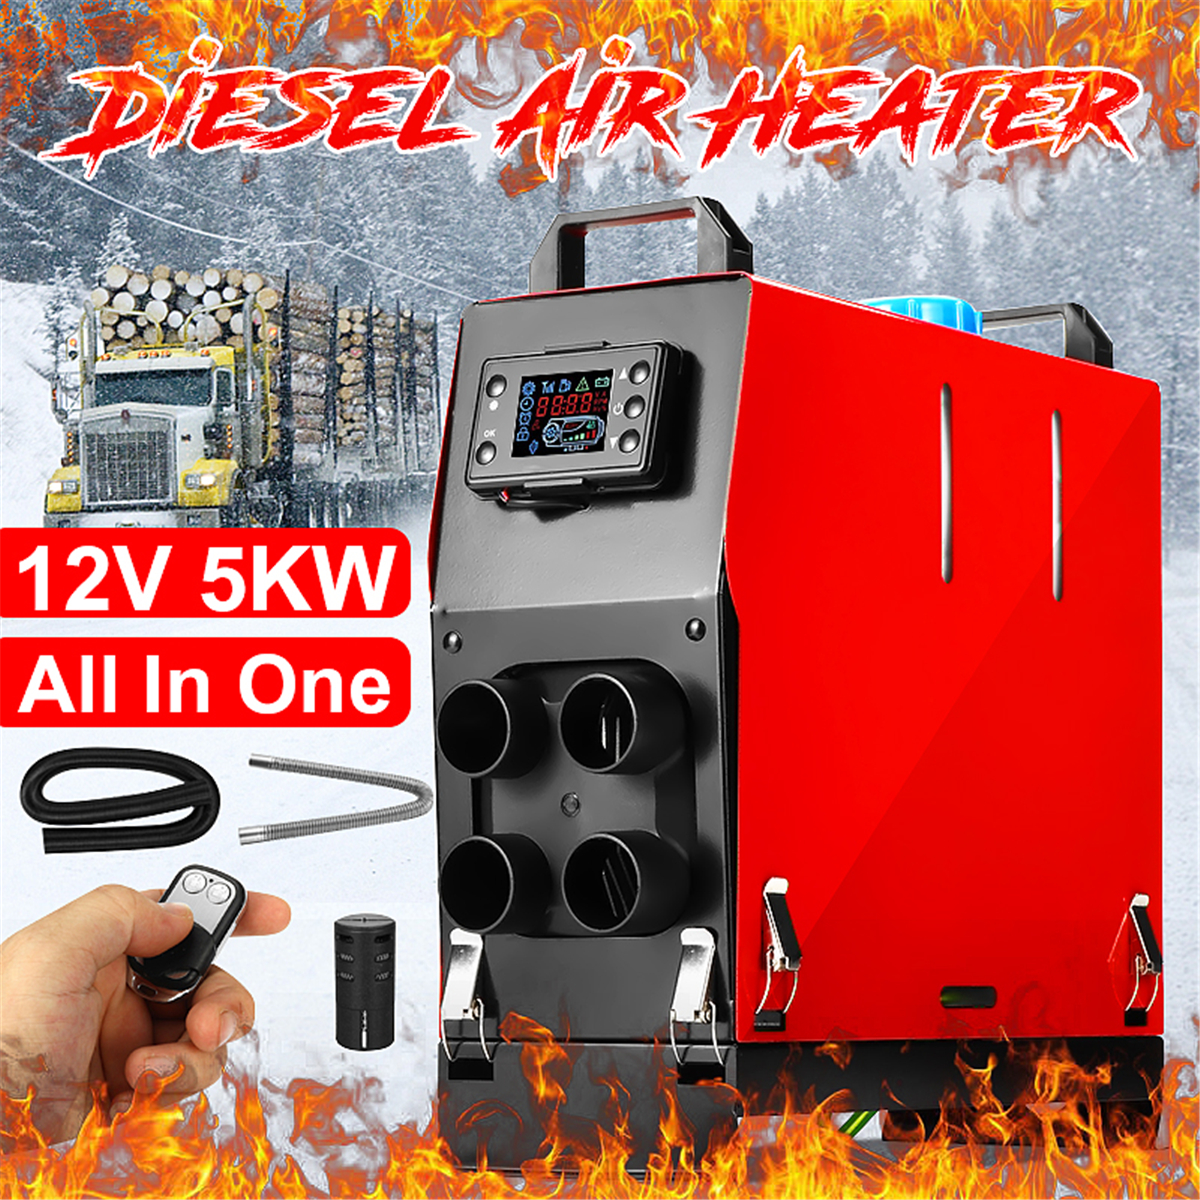 12V 5KW Diesel Air Heater 4 Holes All In 1 +LCD Thermostat for Trailer Truck Car